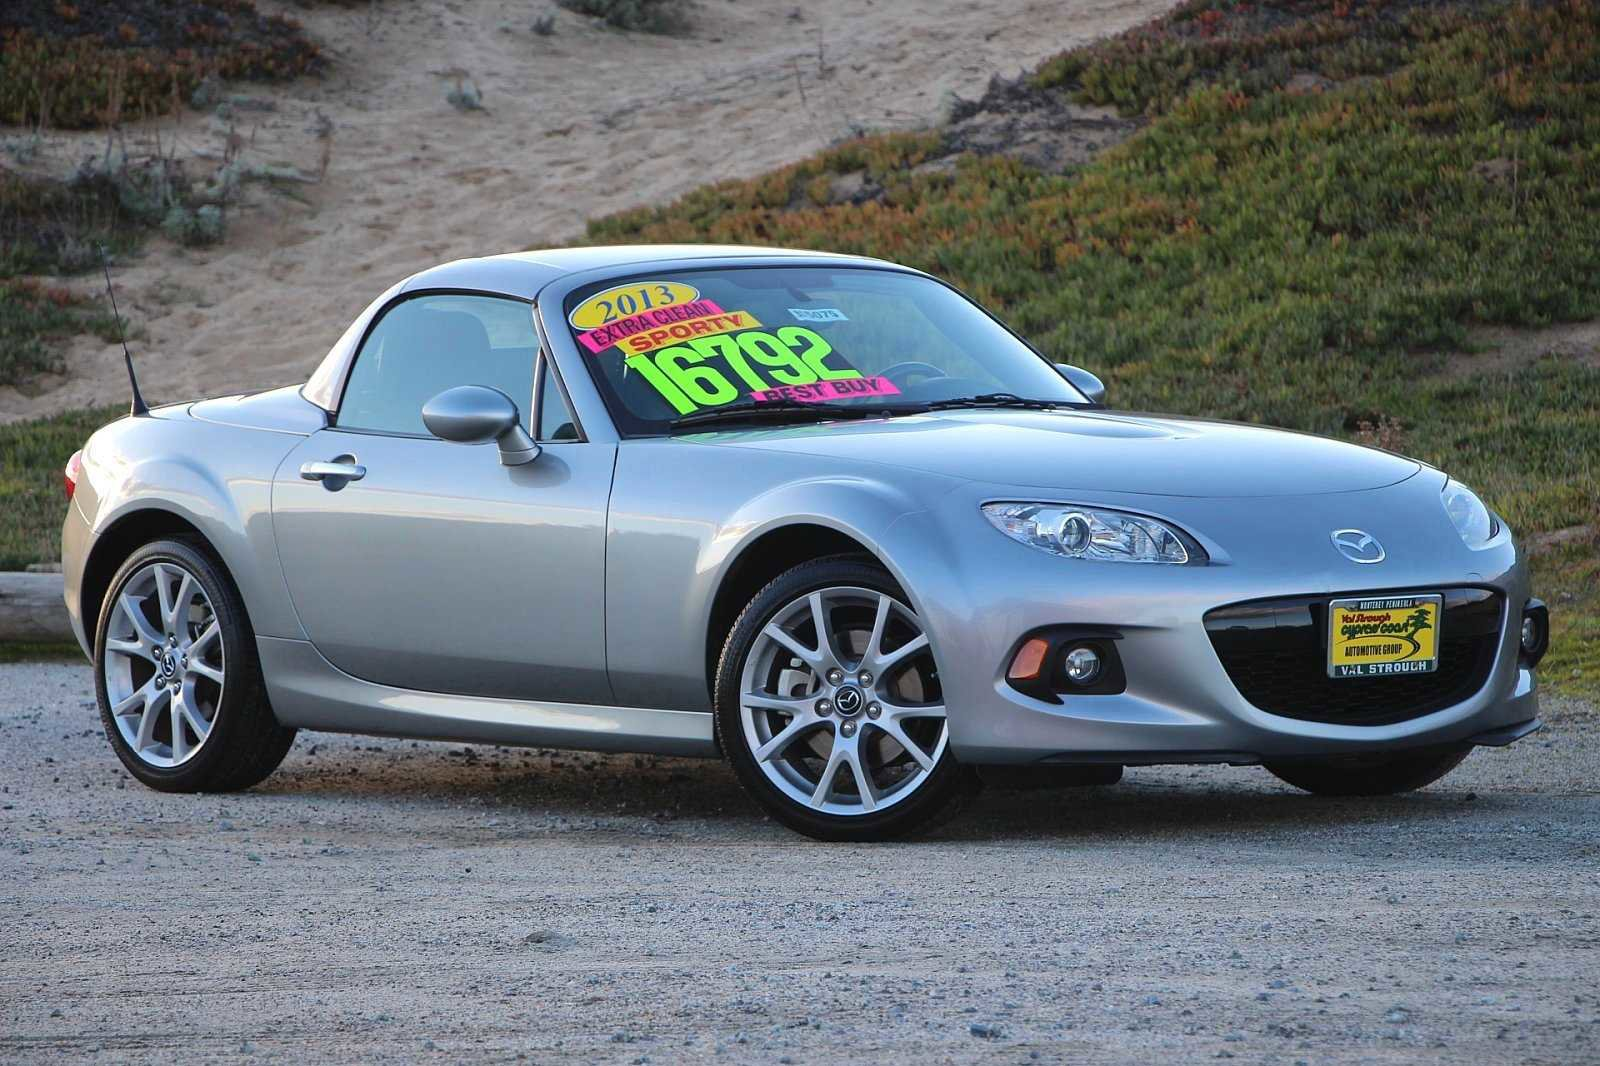 2013 MAZDA MX-5 Miata Grand Touring Hard Top image